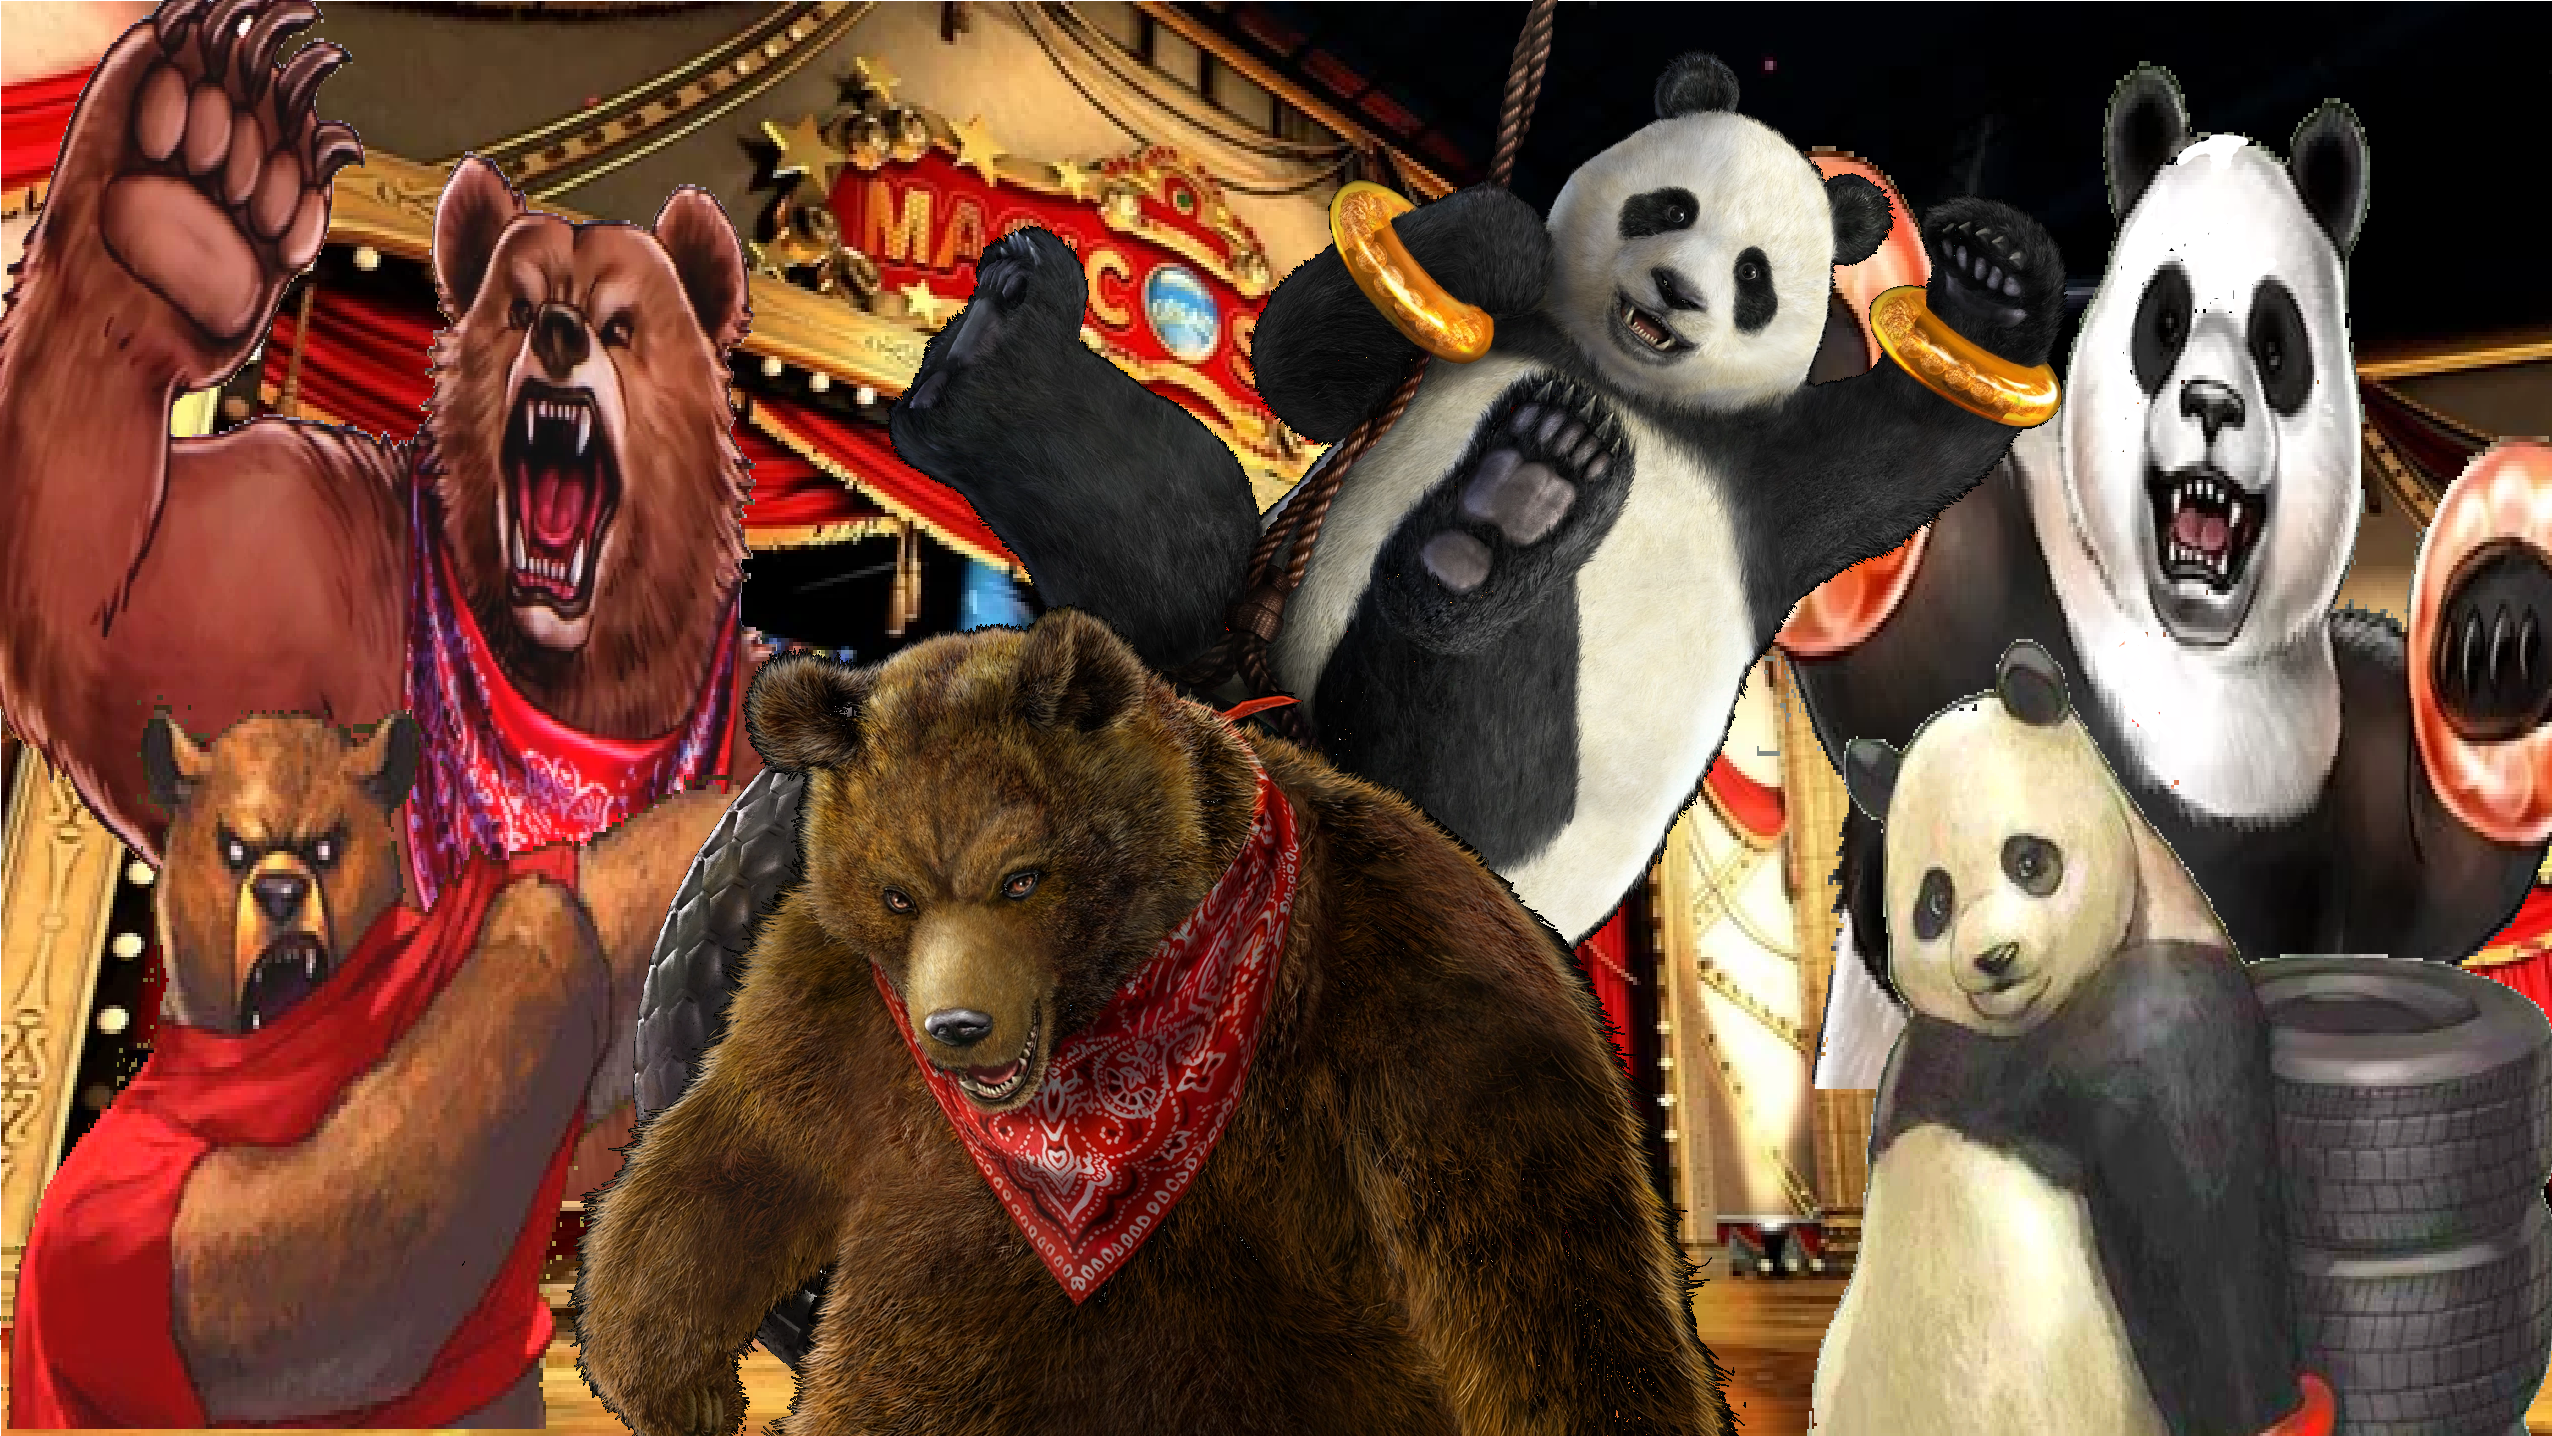 Tekken Tag Tournament 2 Kuma Panda By Lonerpx On Deviantart